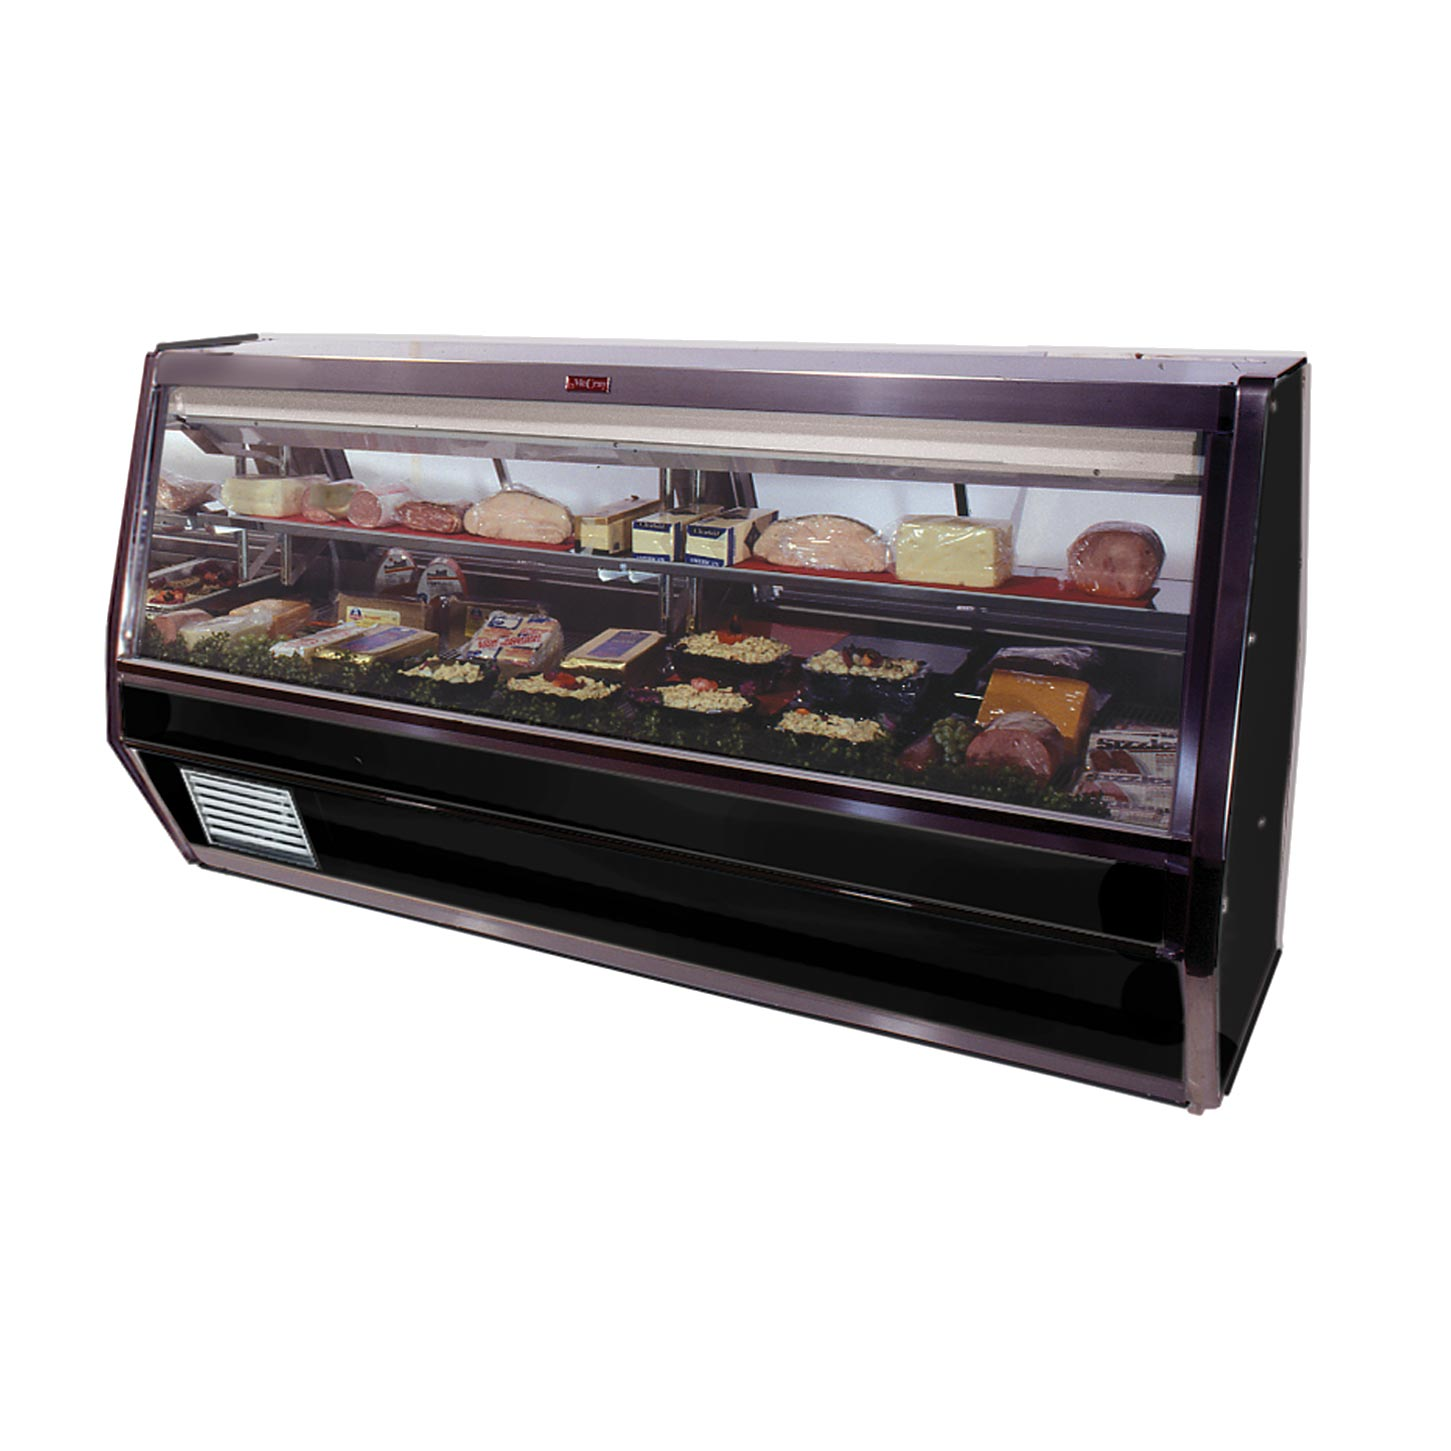 Howard-McCray R-CDS40E-8-BE-LED display case, refrigerated deli